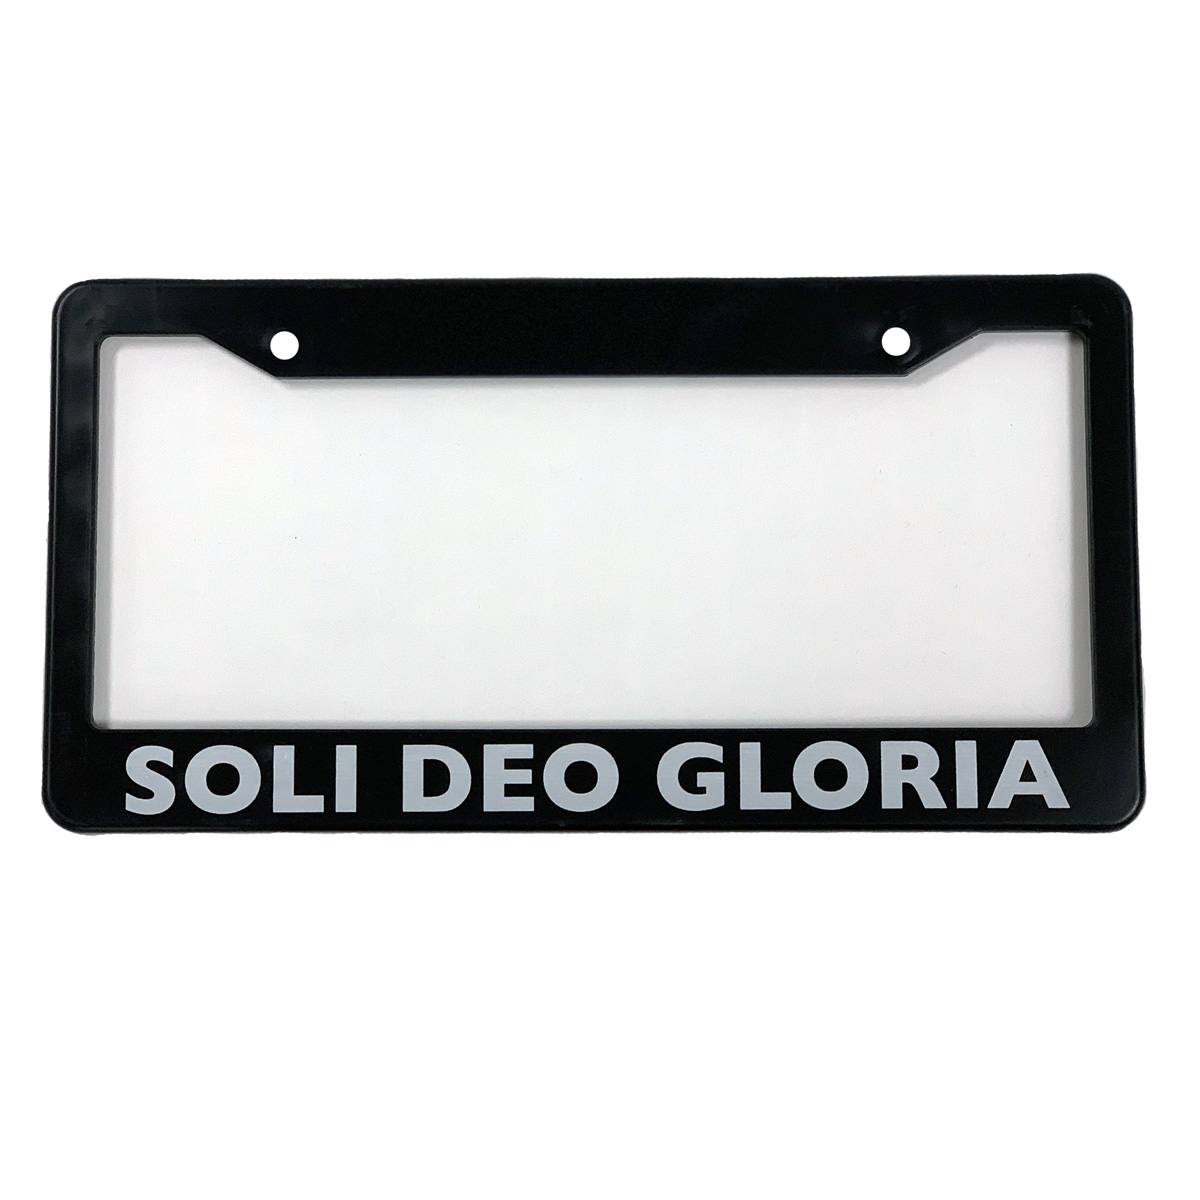 Soli Deo Gloria License Plate Frame